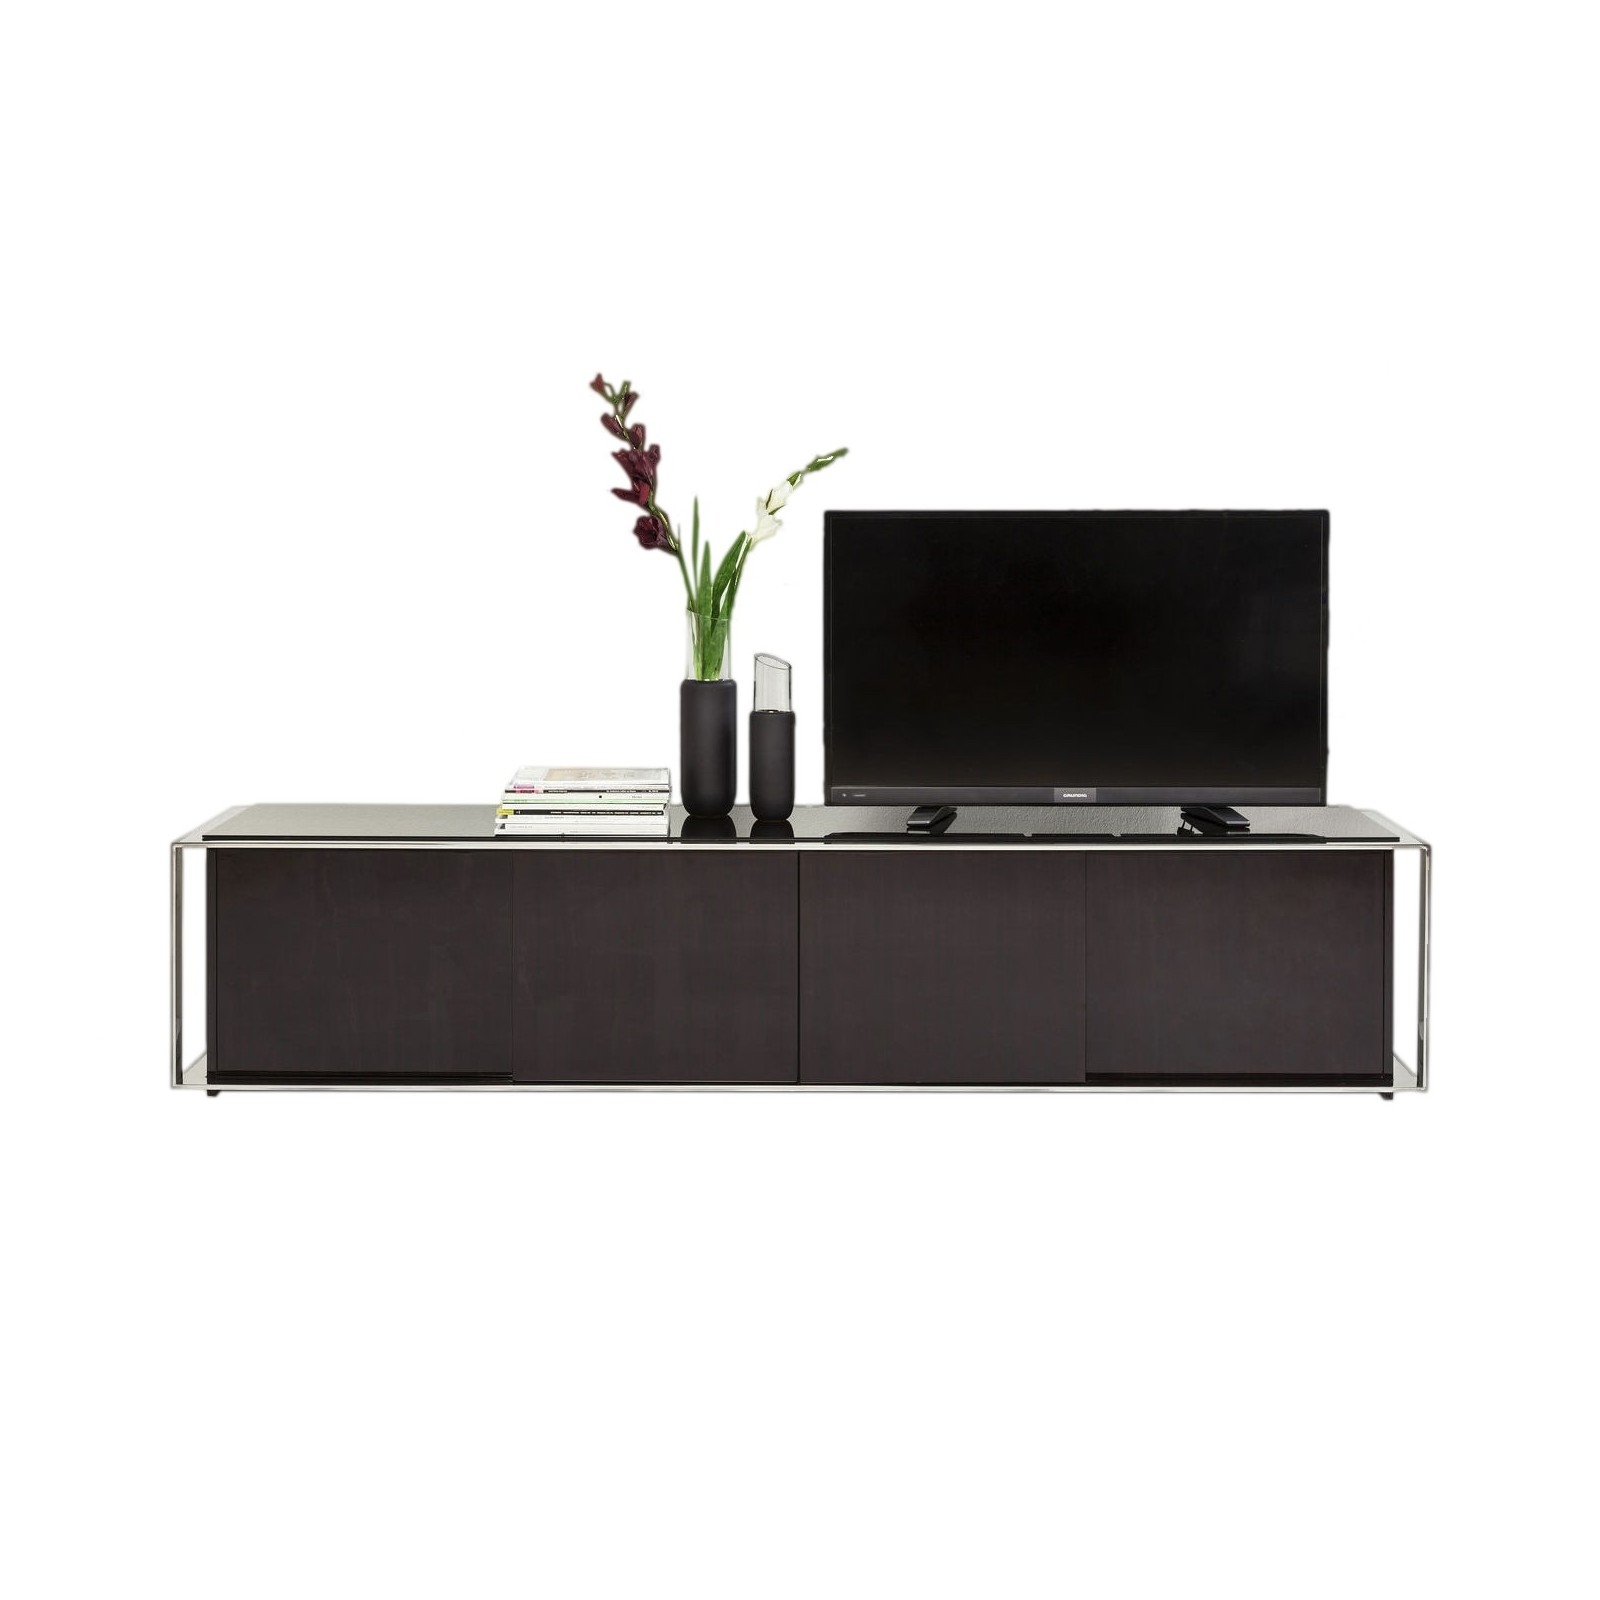 Meuble tv vanity marron kare design - Meuble kare design ...